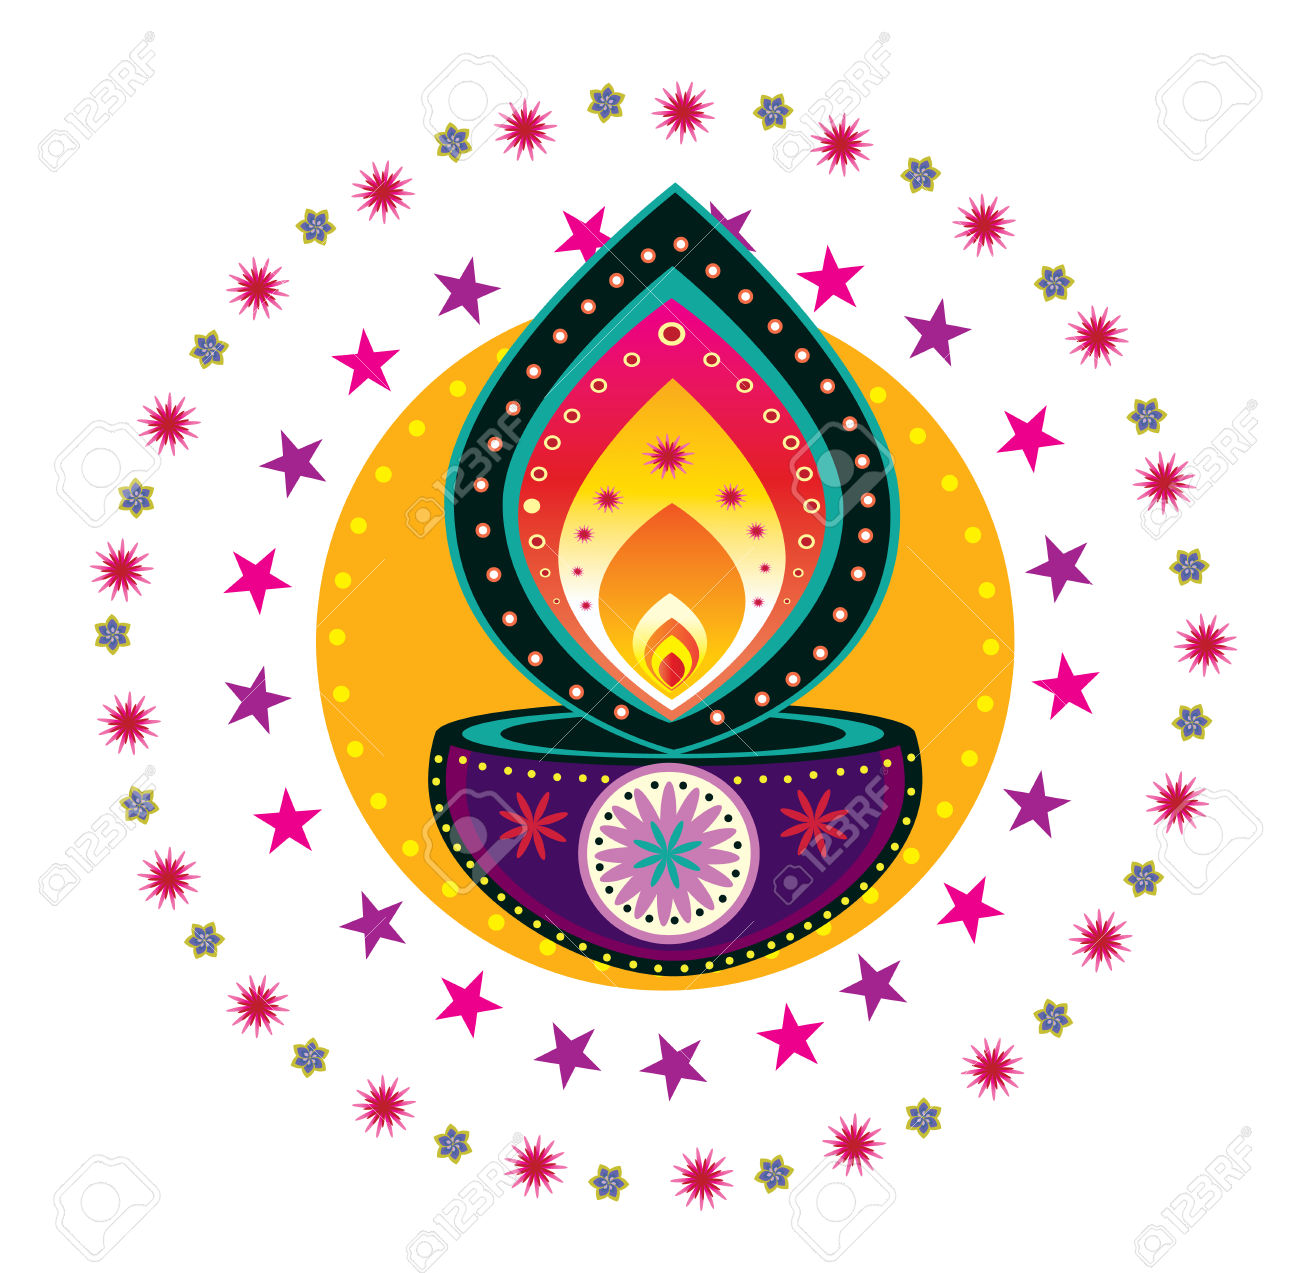 Diwali Candle Light Royalty Free Cliparts, Vectors, And Stock.